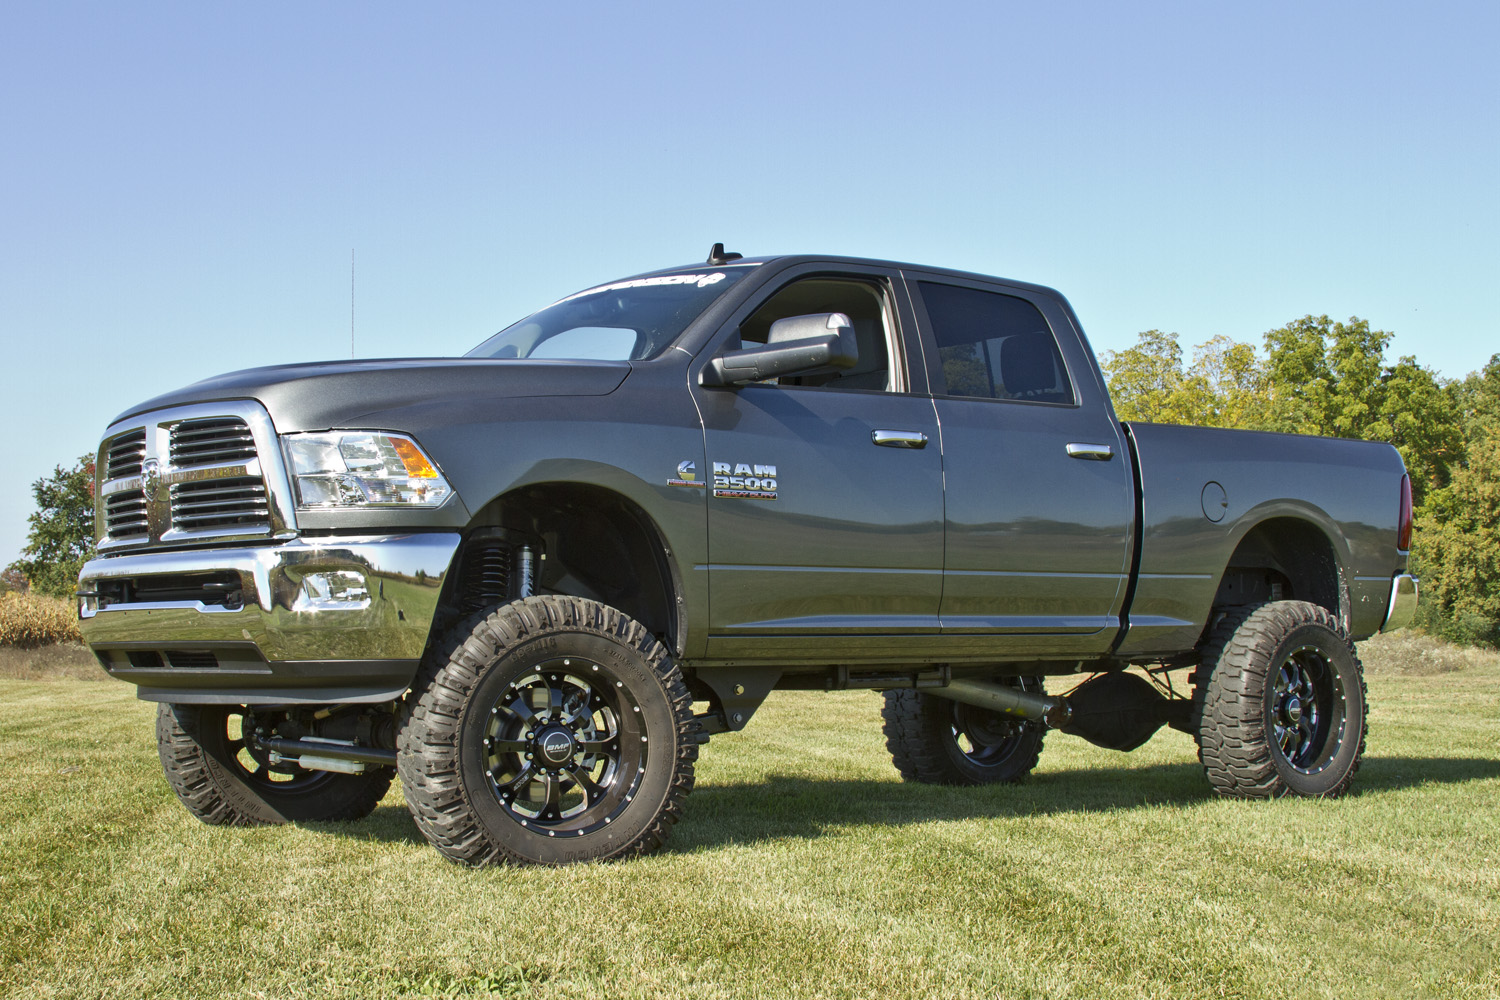 Lifted 2013 *Dodge* *Ram* 2500 SLT 4x4 Diesel Truck w ...